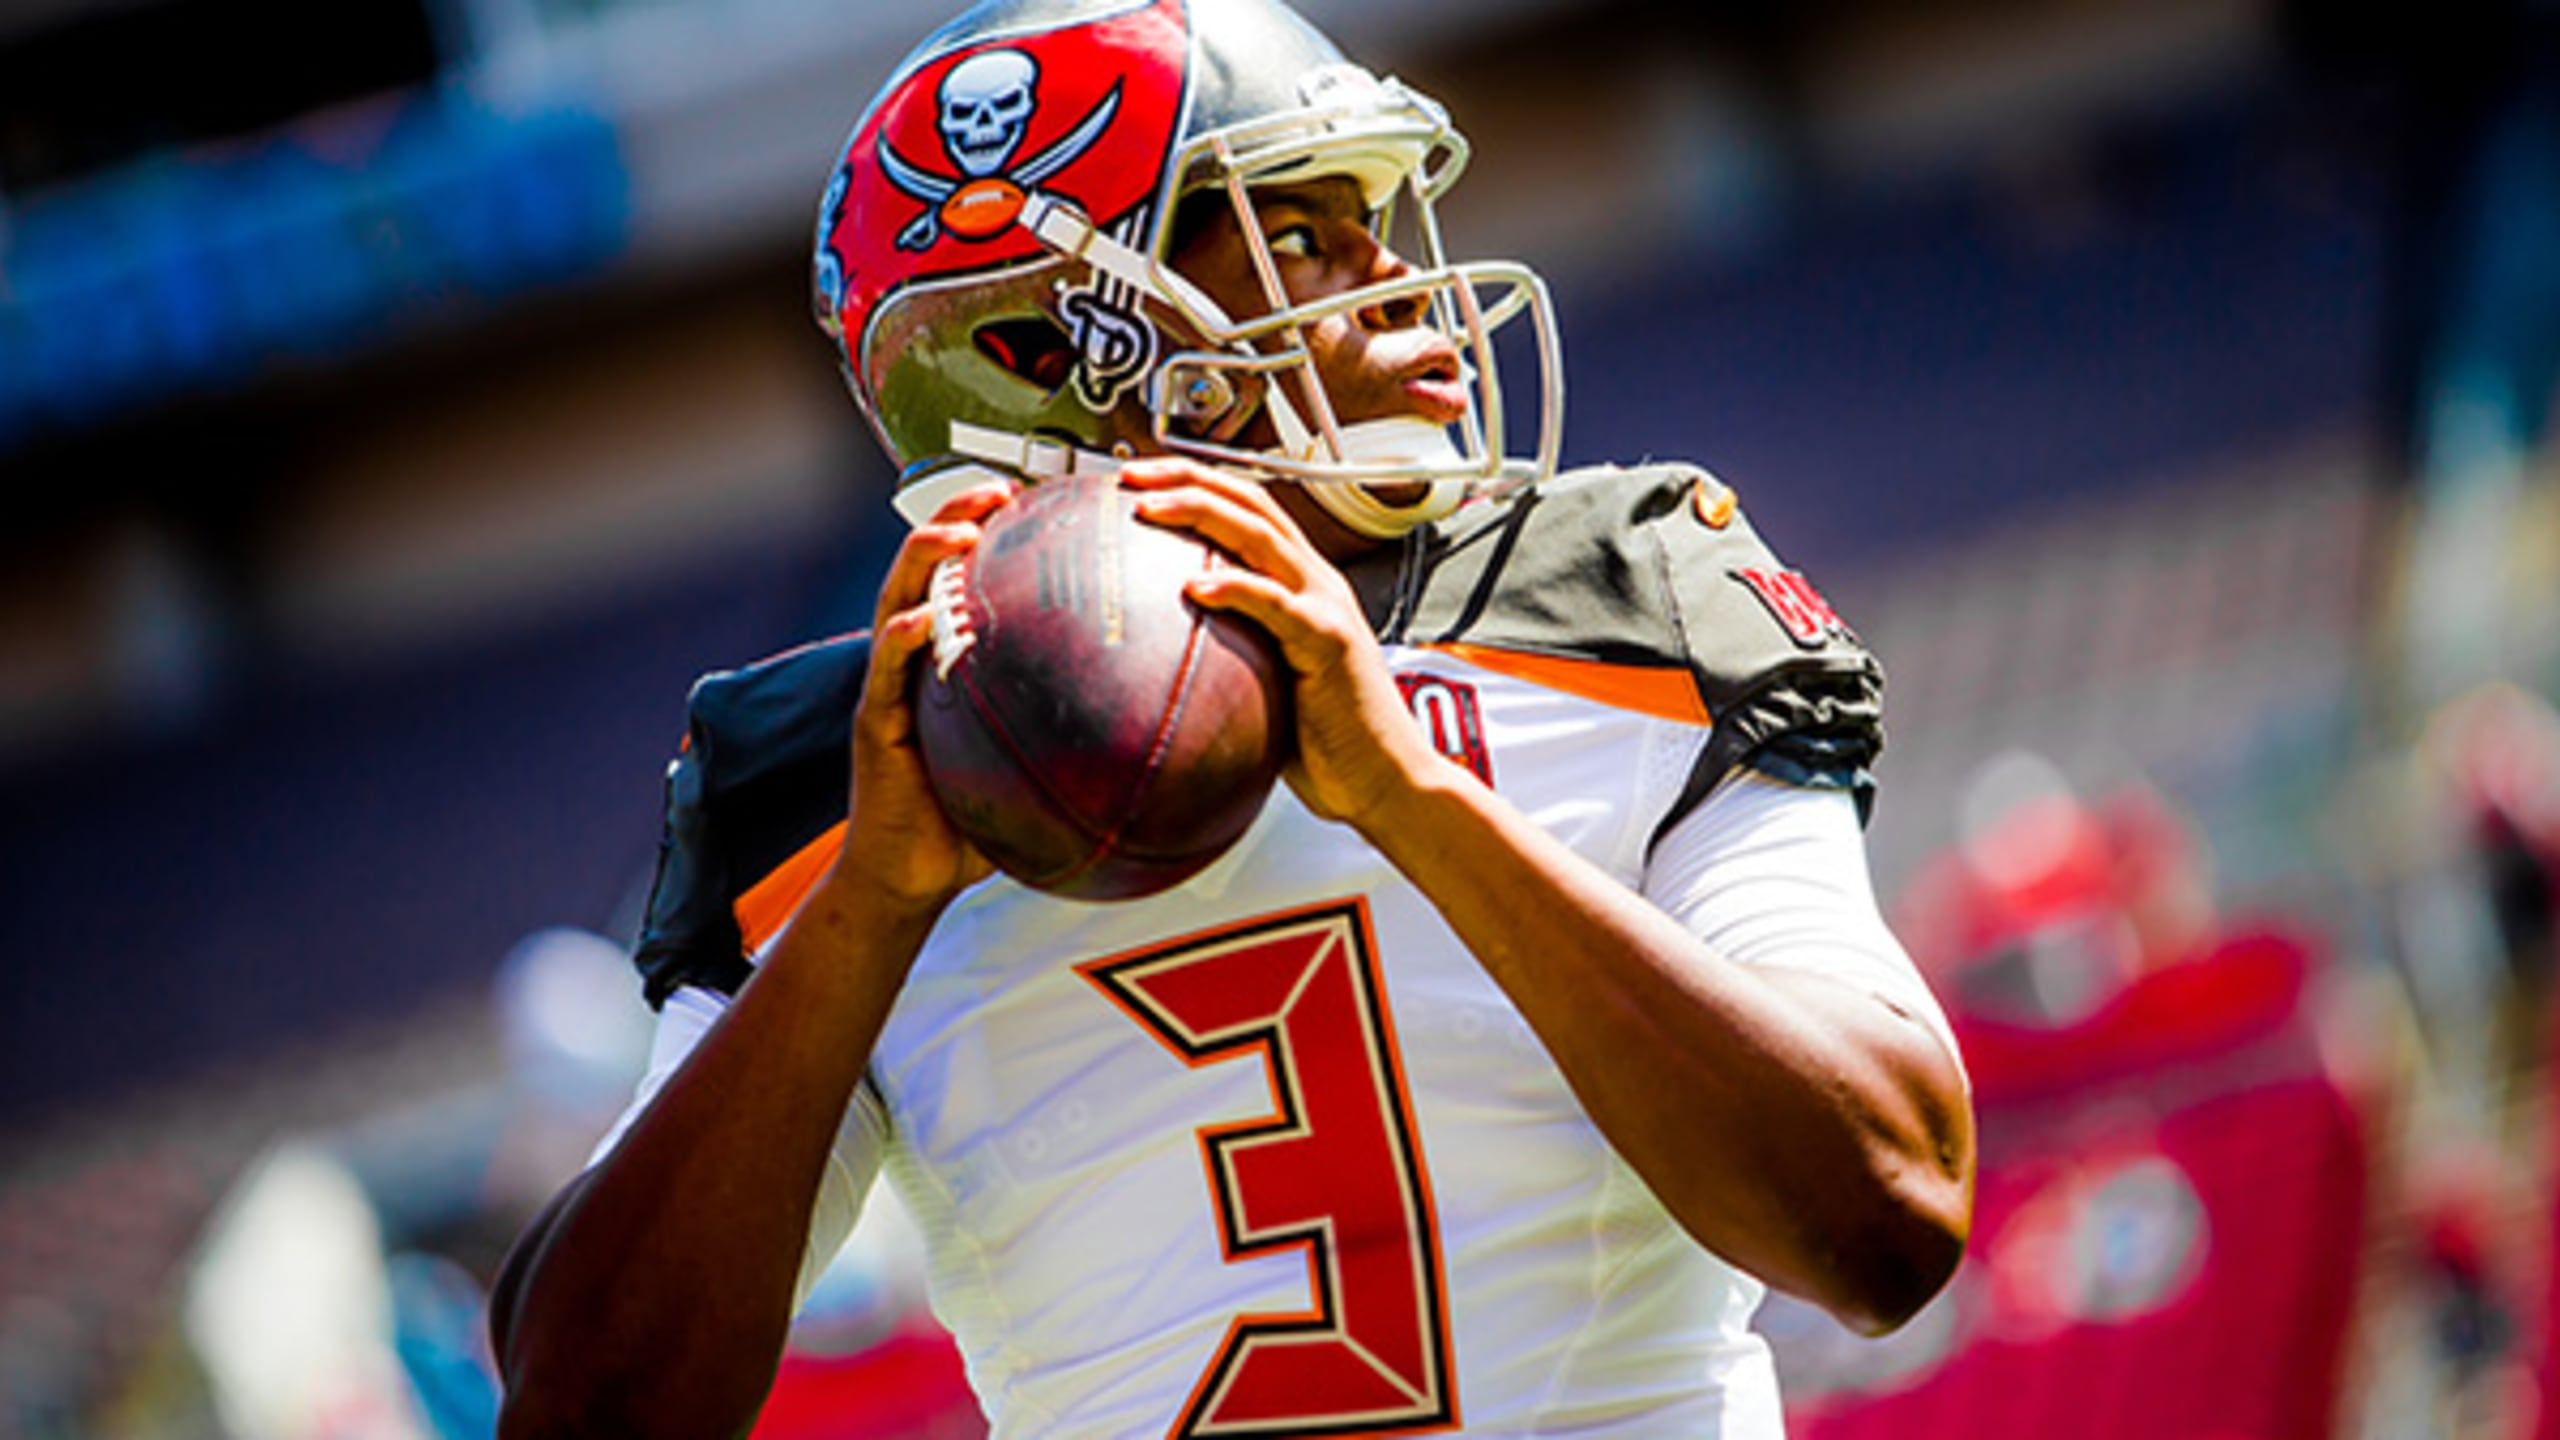 And the Starting Quarterback for Buccaneers is……